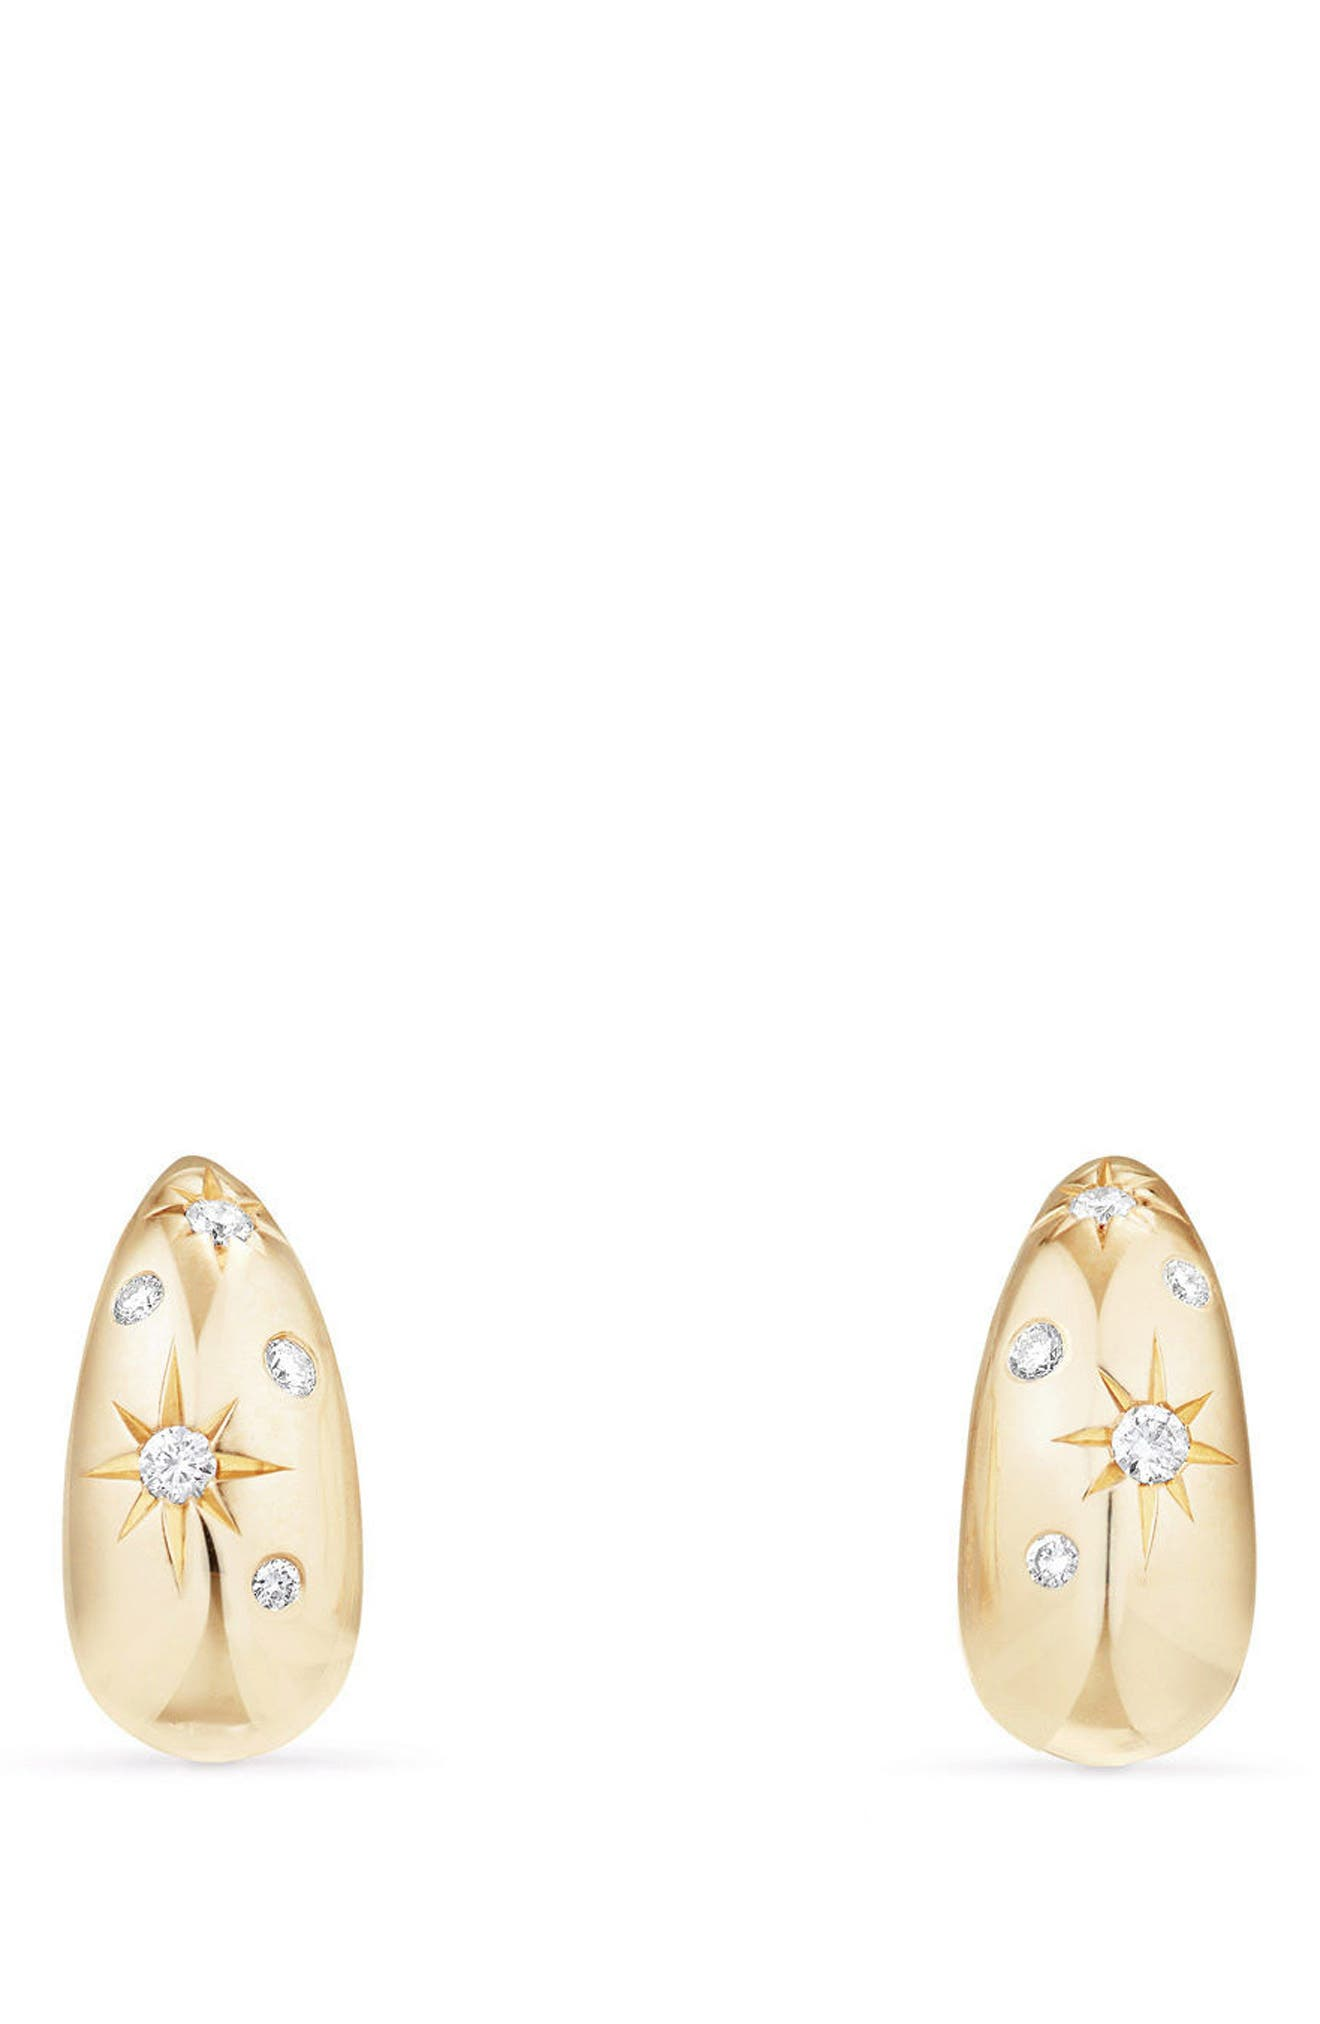 Pure Form Pod Earrings with Diamonds in 18K Gold, 15mm,                         Main,                         color, Yellow Gold/ Diamond